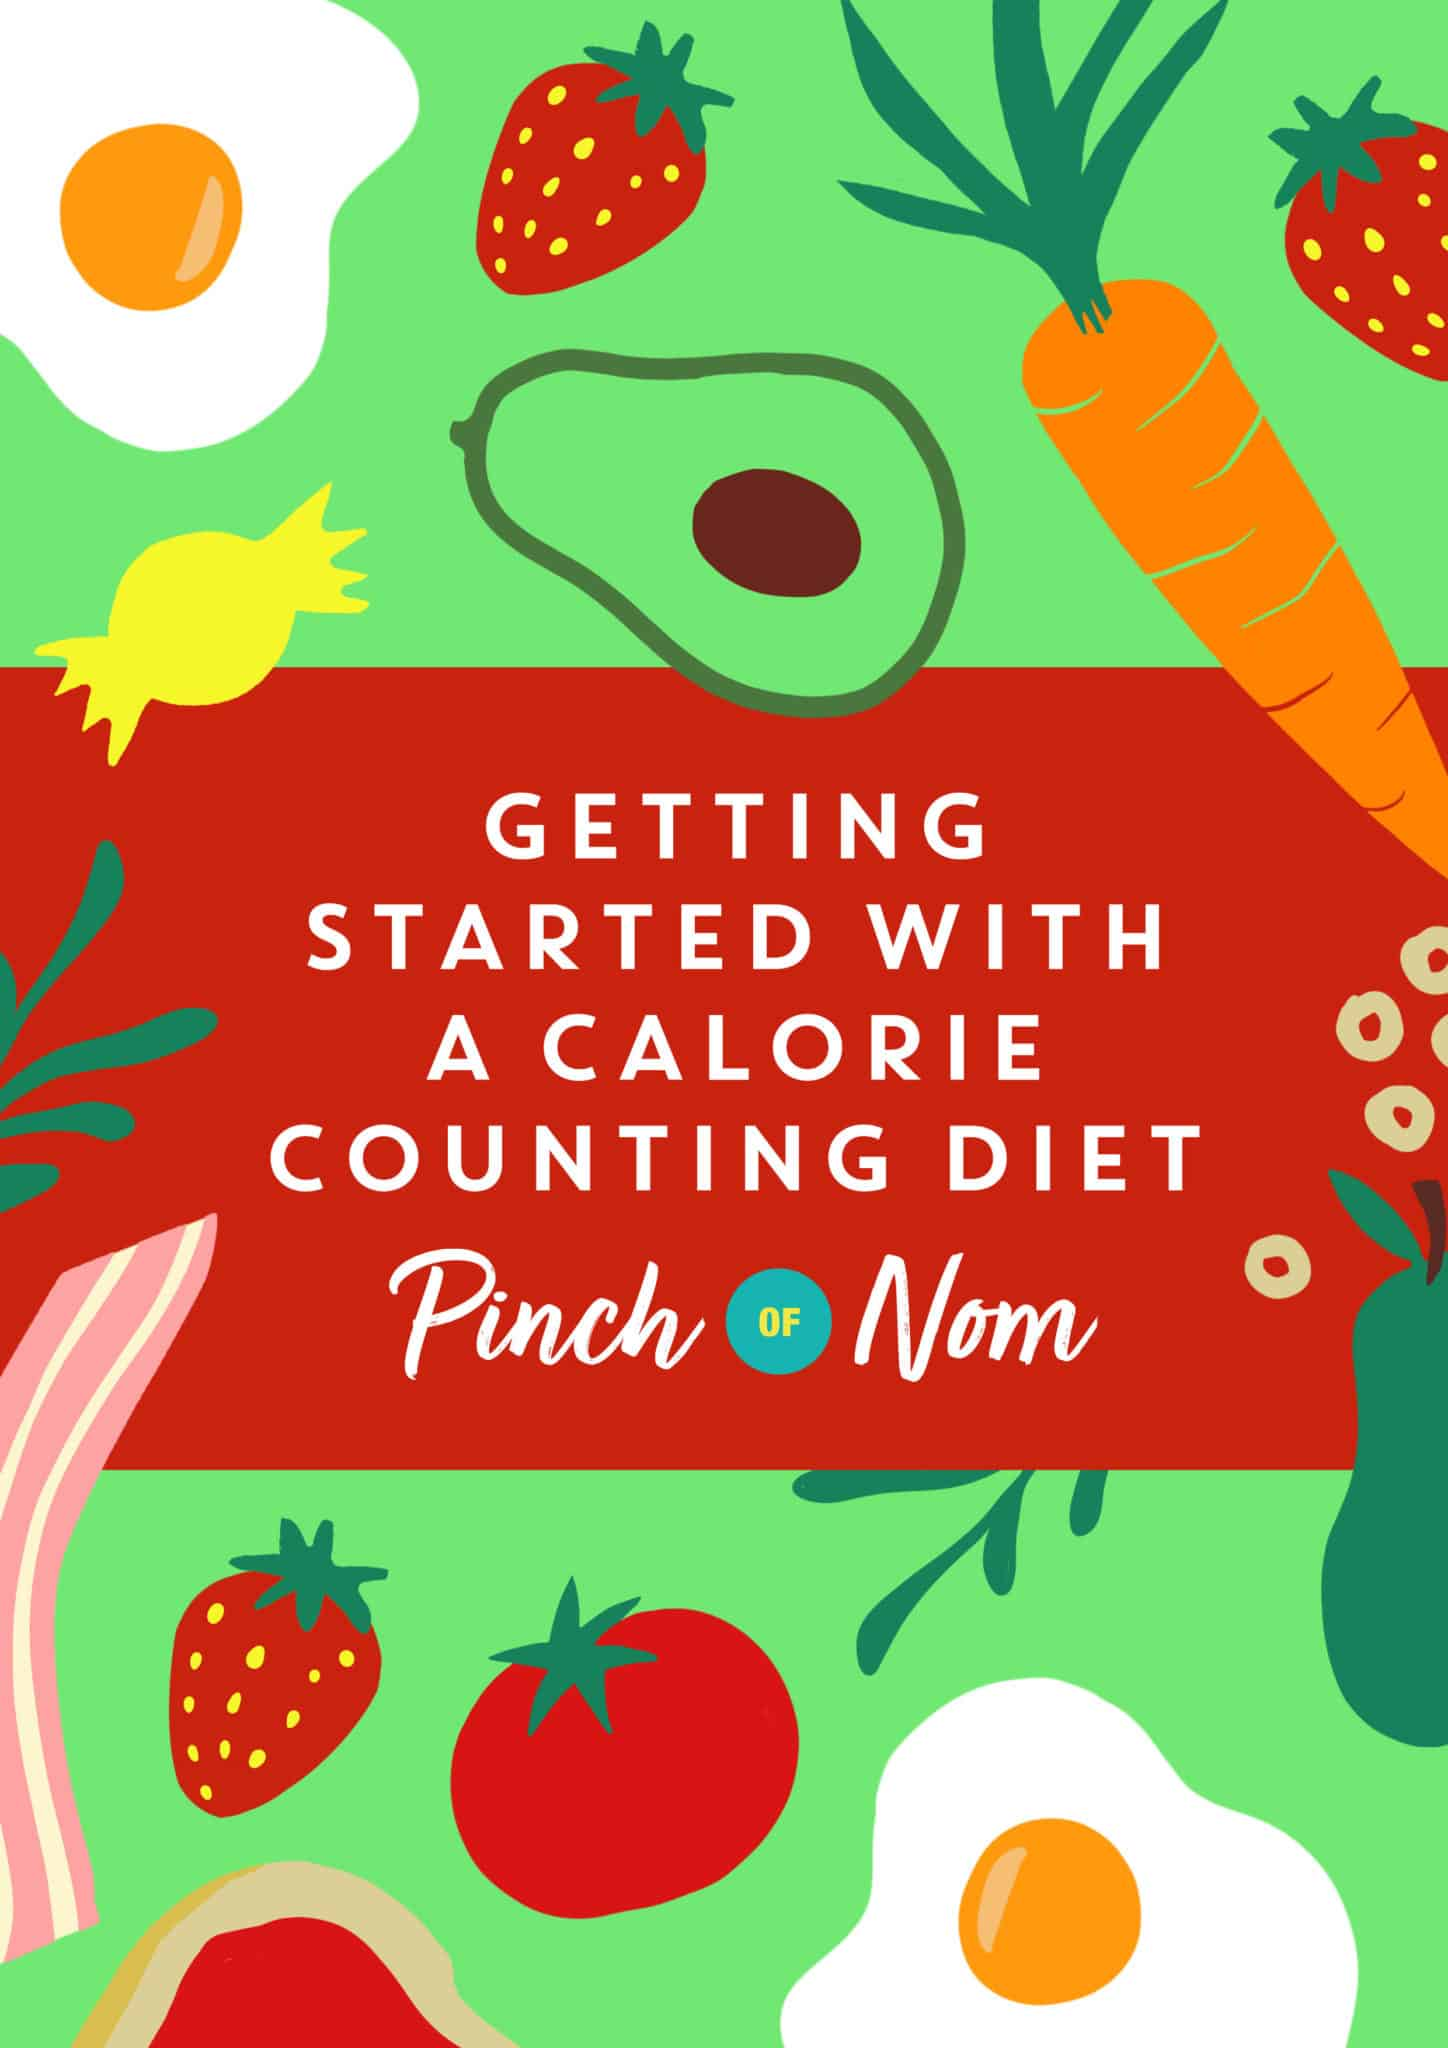 Getting started with a calorie counting diet | Pinch of Nom